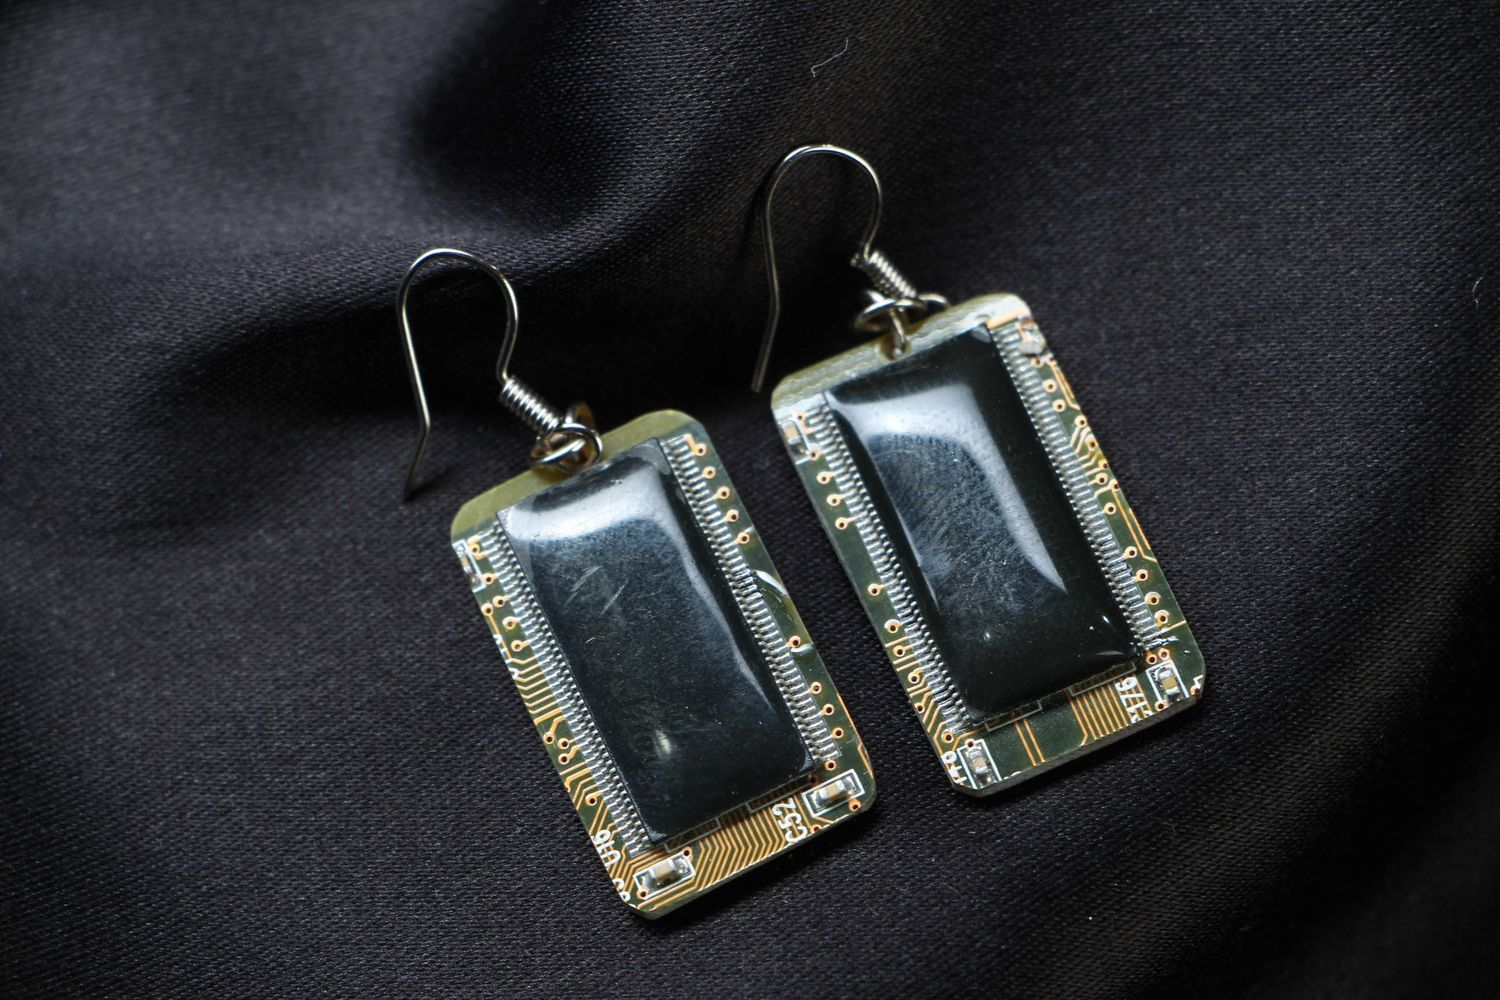 steampunk earrings Cyberpunk earrings with microchips - MADEheart.com